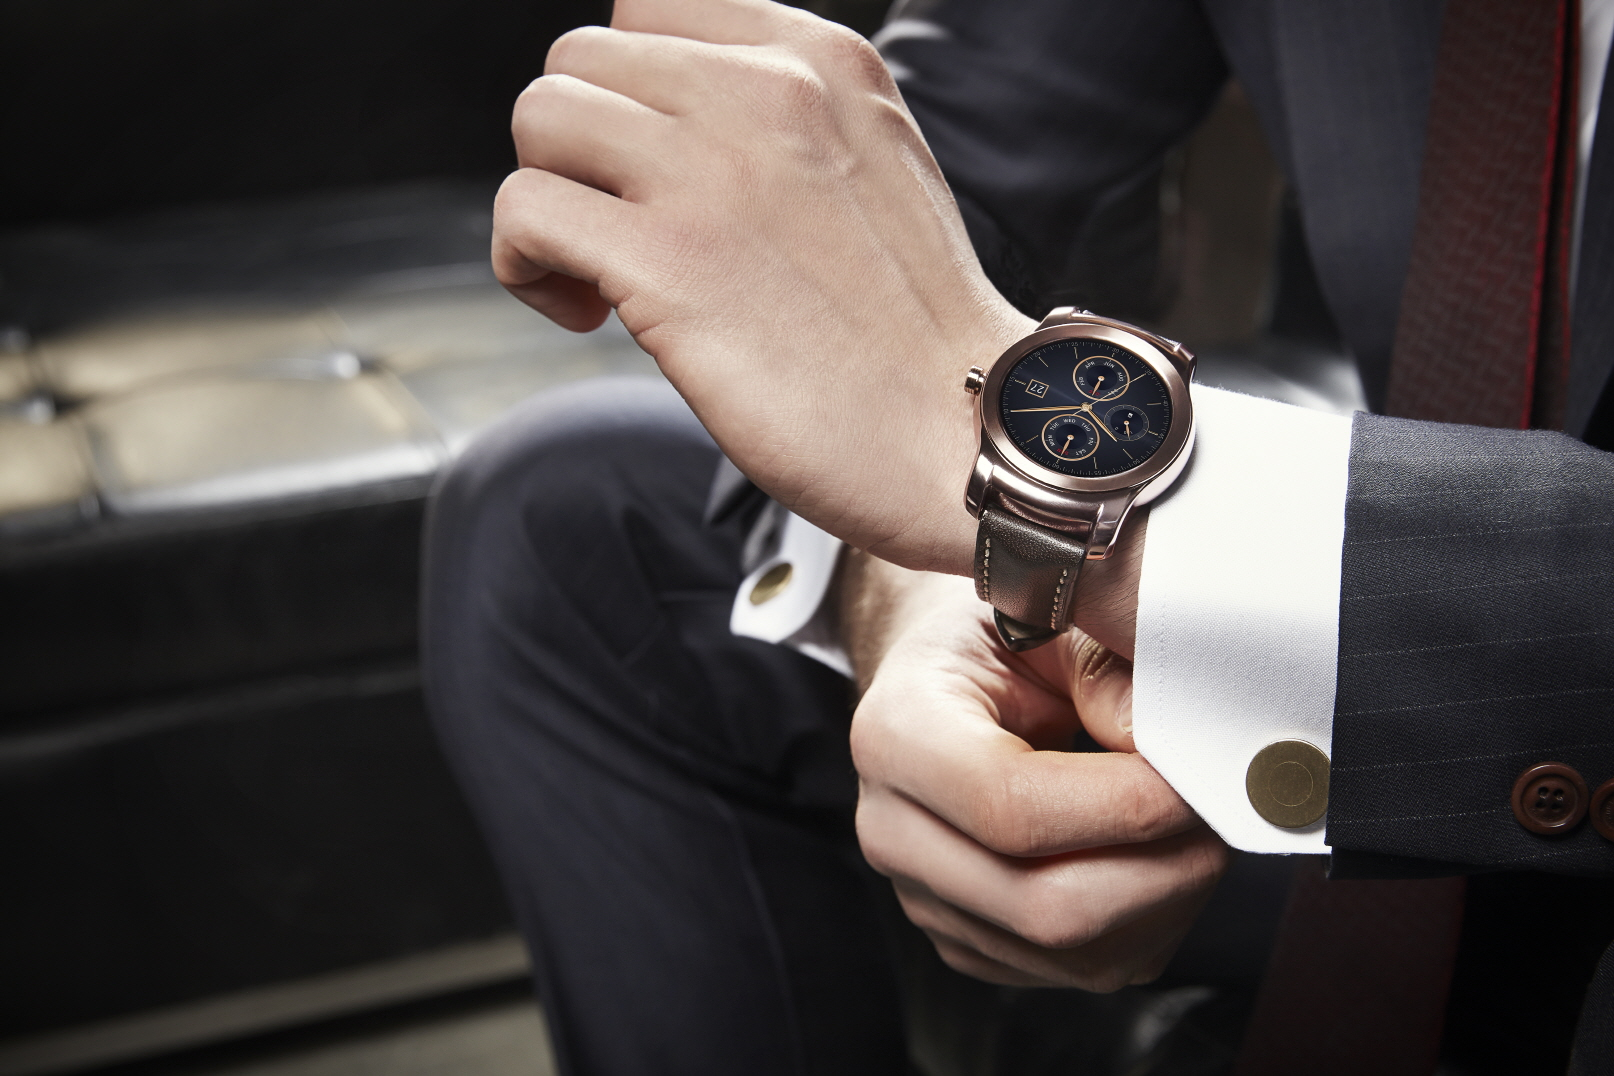 A man in suit tidies up the sleeve while wearing LG's Watch Urban.